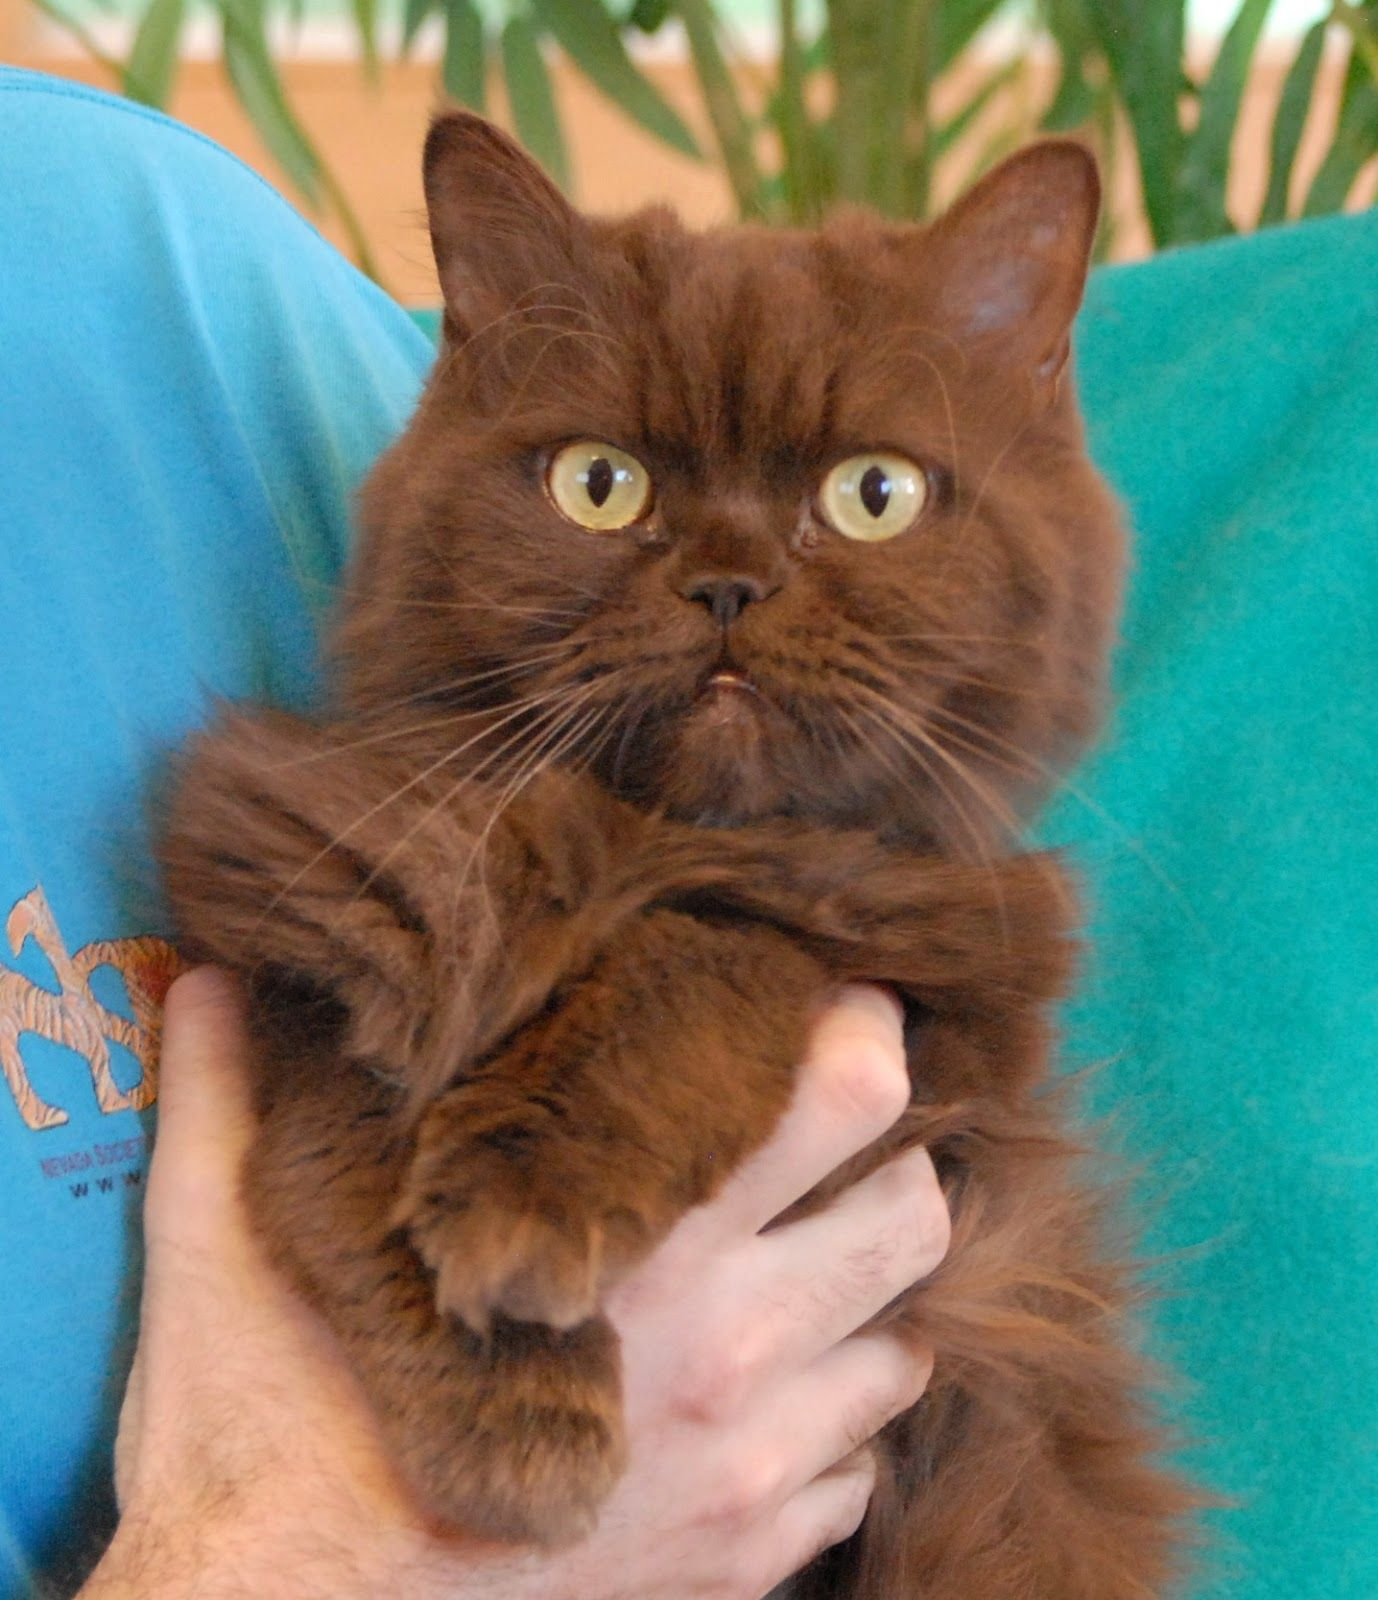 the rare brown cat All things Cat Pinterest